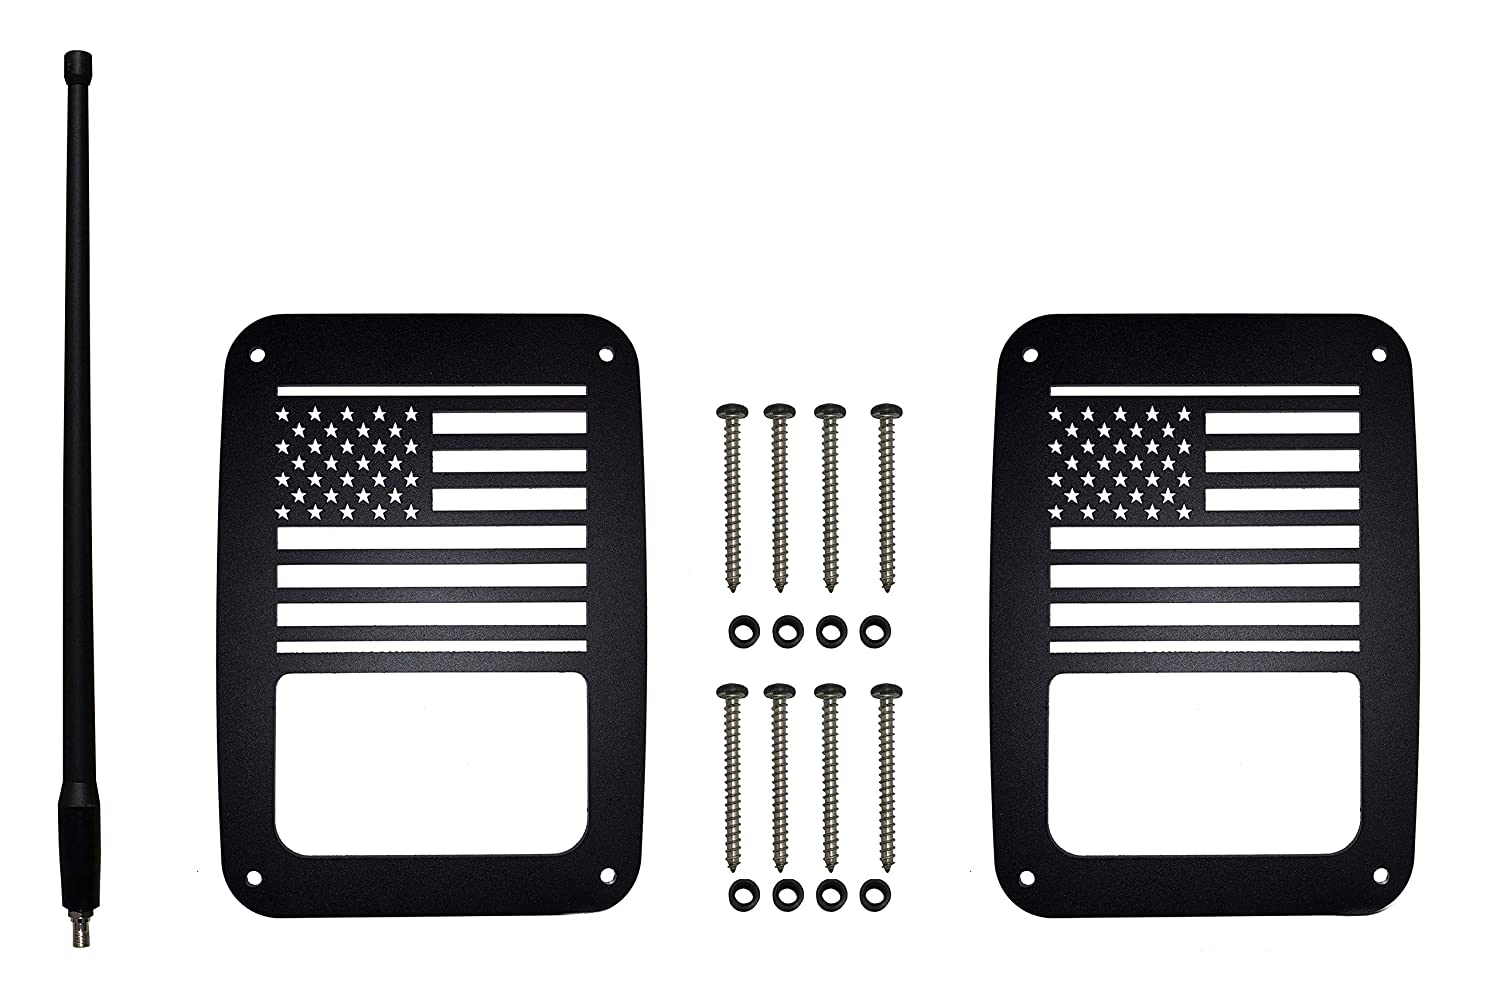 2007-2018 - Precision Made Covers Never Rust Accessories Include All Installation Hardware for JK and JKU Sugar Skull VroomTec Jeep Wrangler Aluminum Tail Light Guards